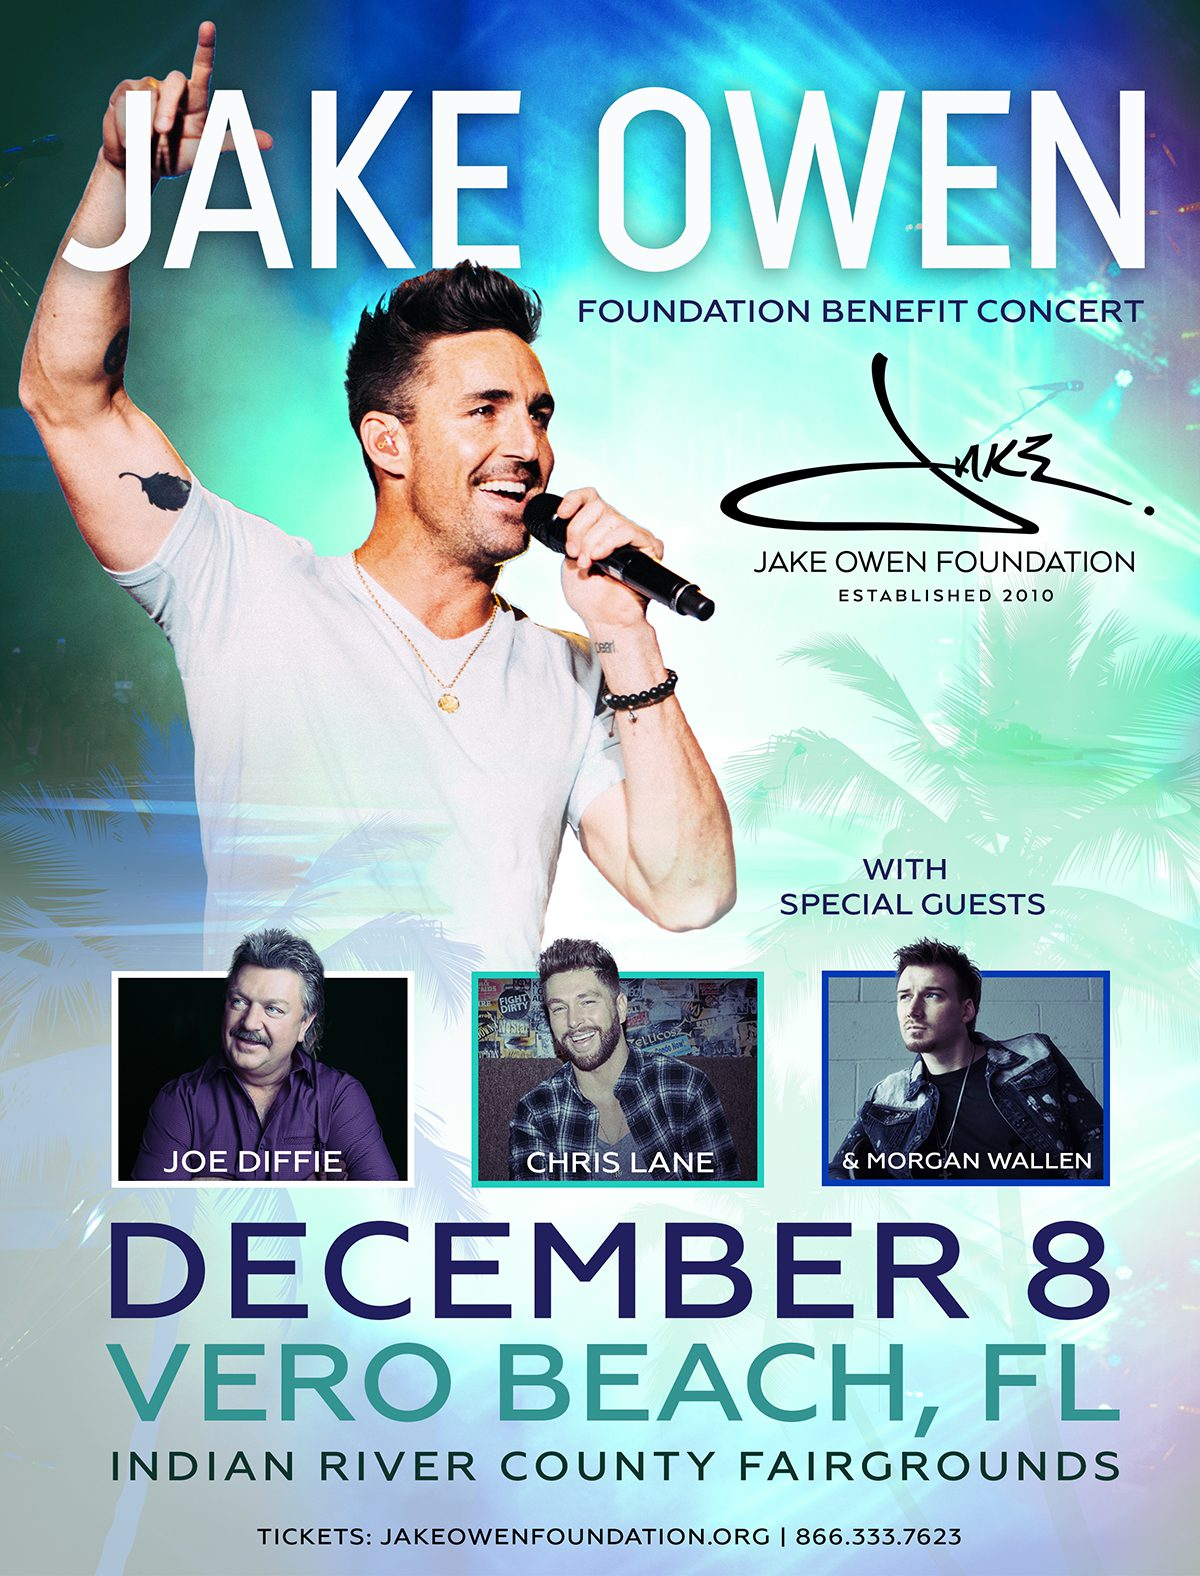 12TH ANNUAL JAKE OWEN FOUNDATION BENEFIT CONCERT ANNOUNCED